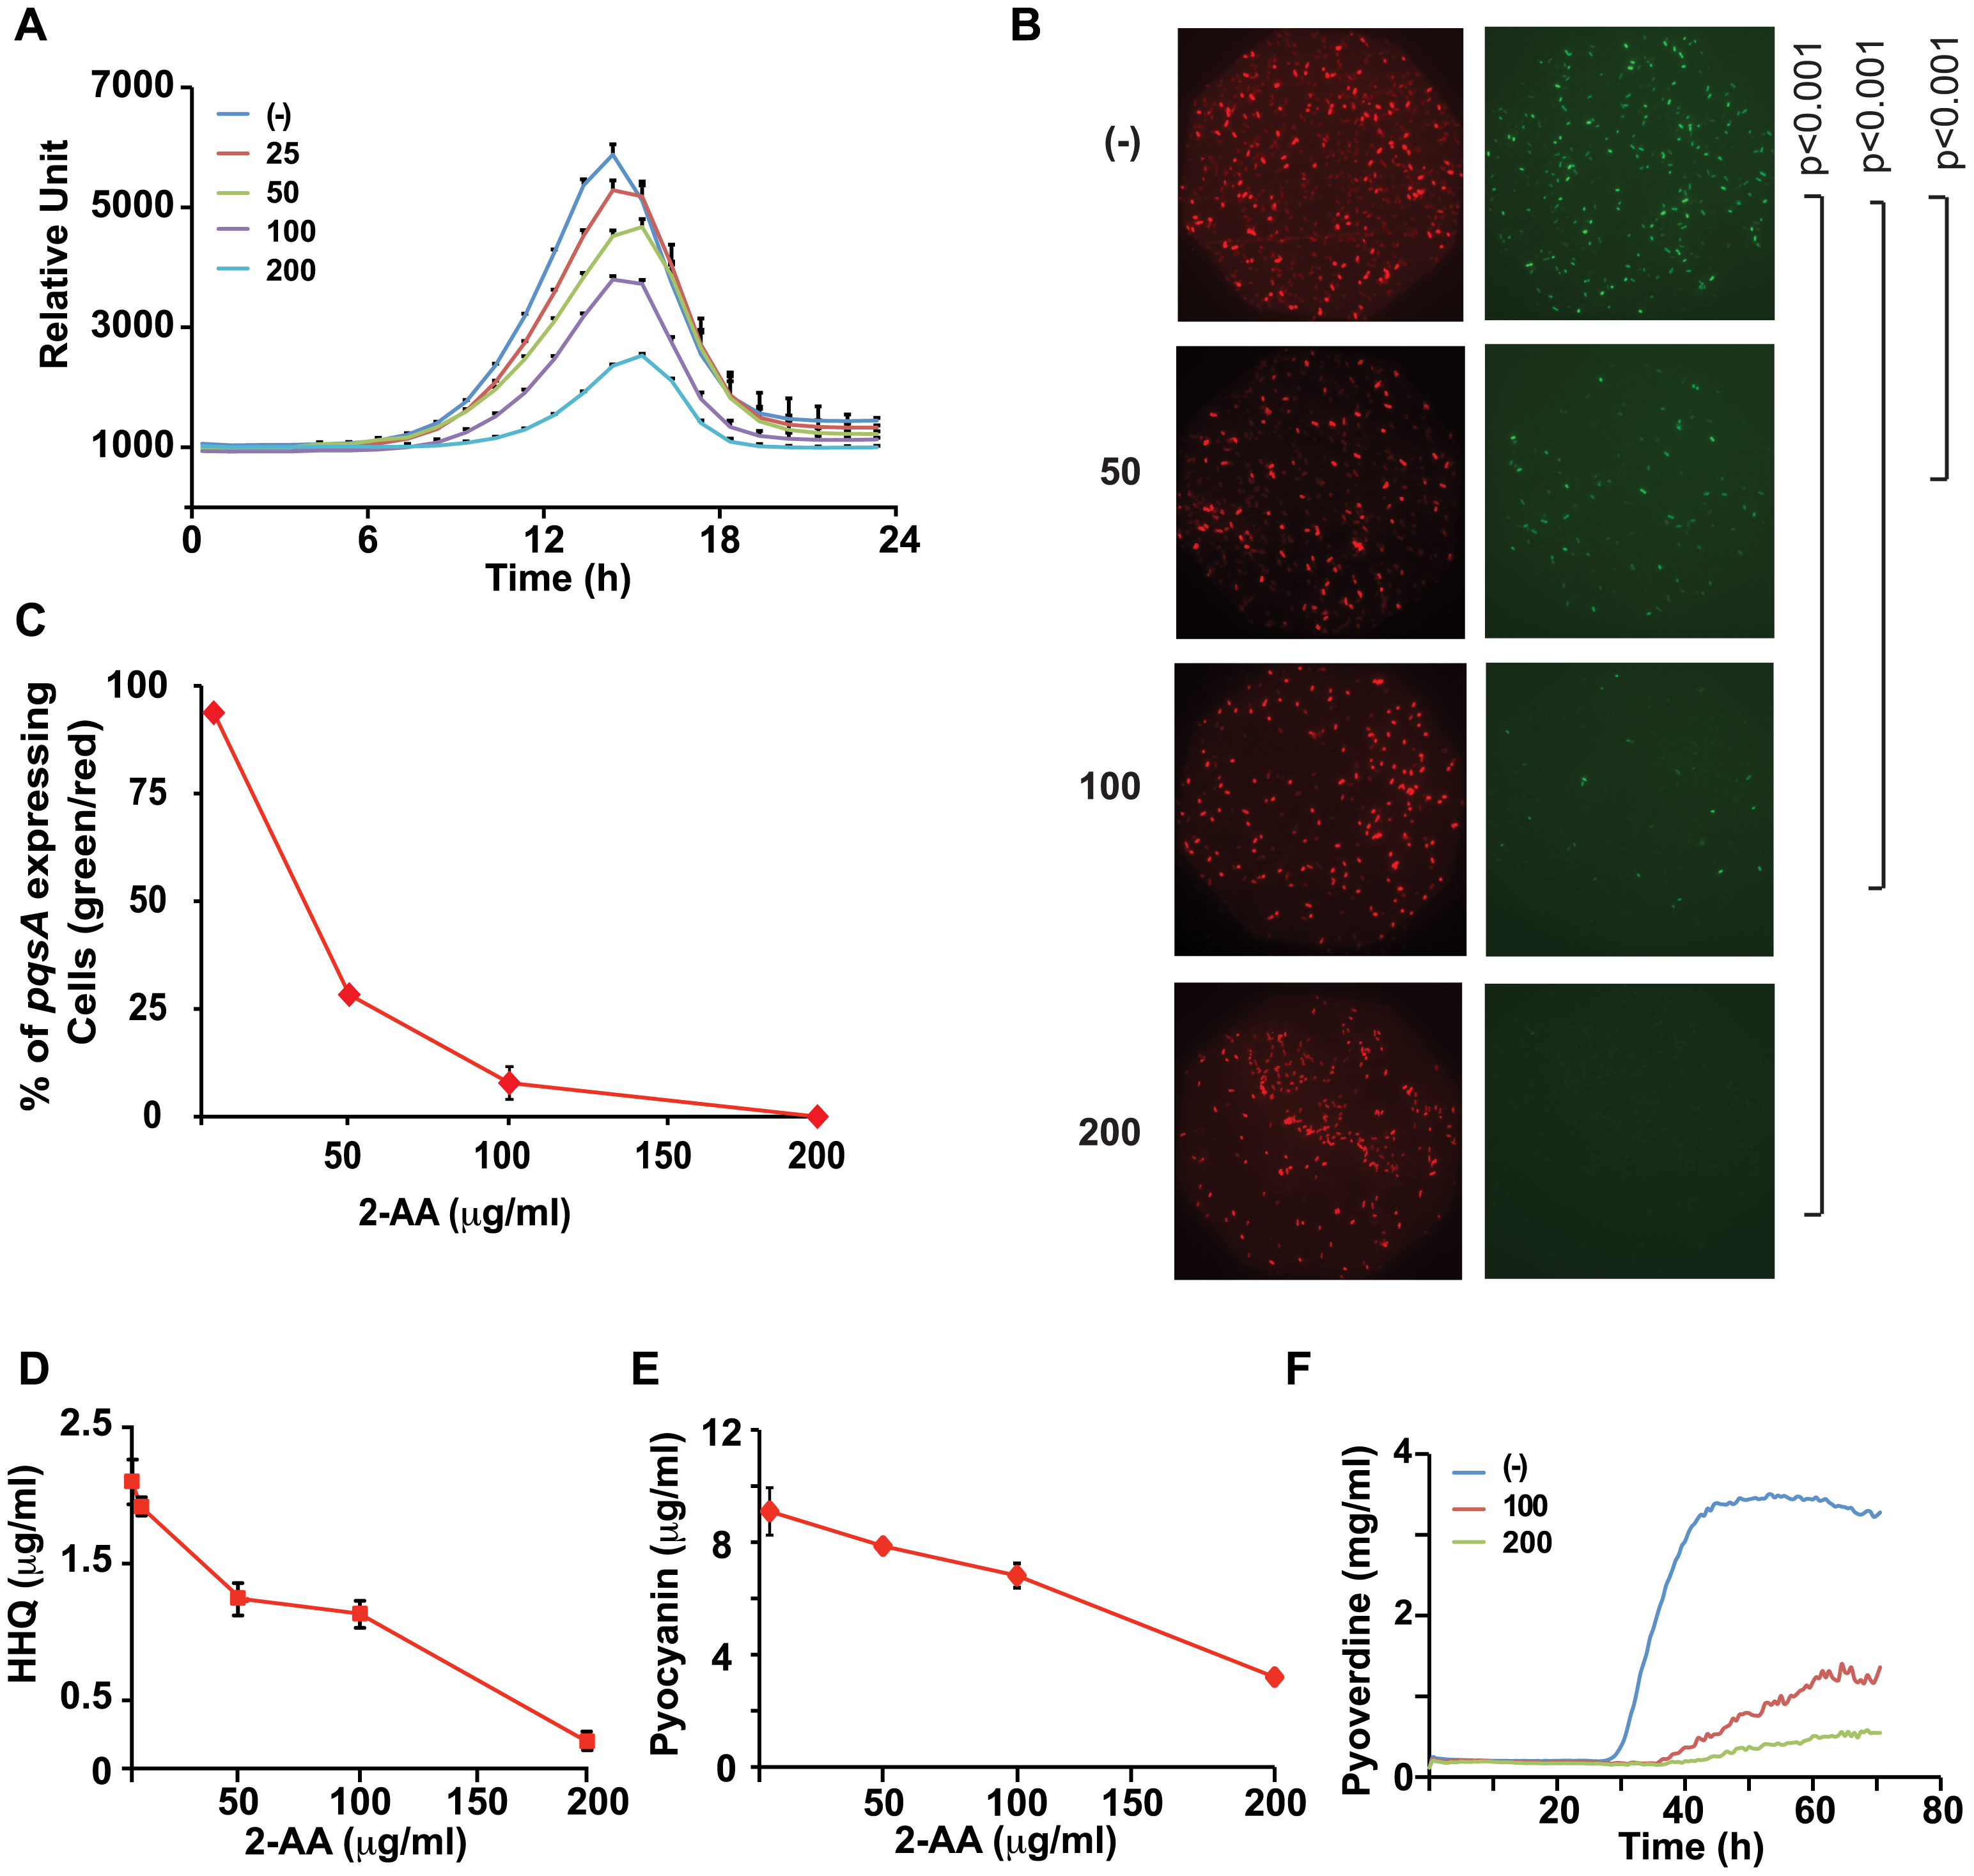 2-AA silences MvfR regulon in a subpopulation of cells and restricts HAQ mediated QS signaling relevant in acute infection.